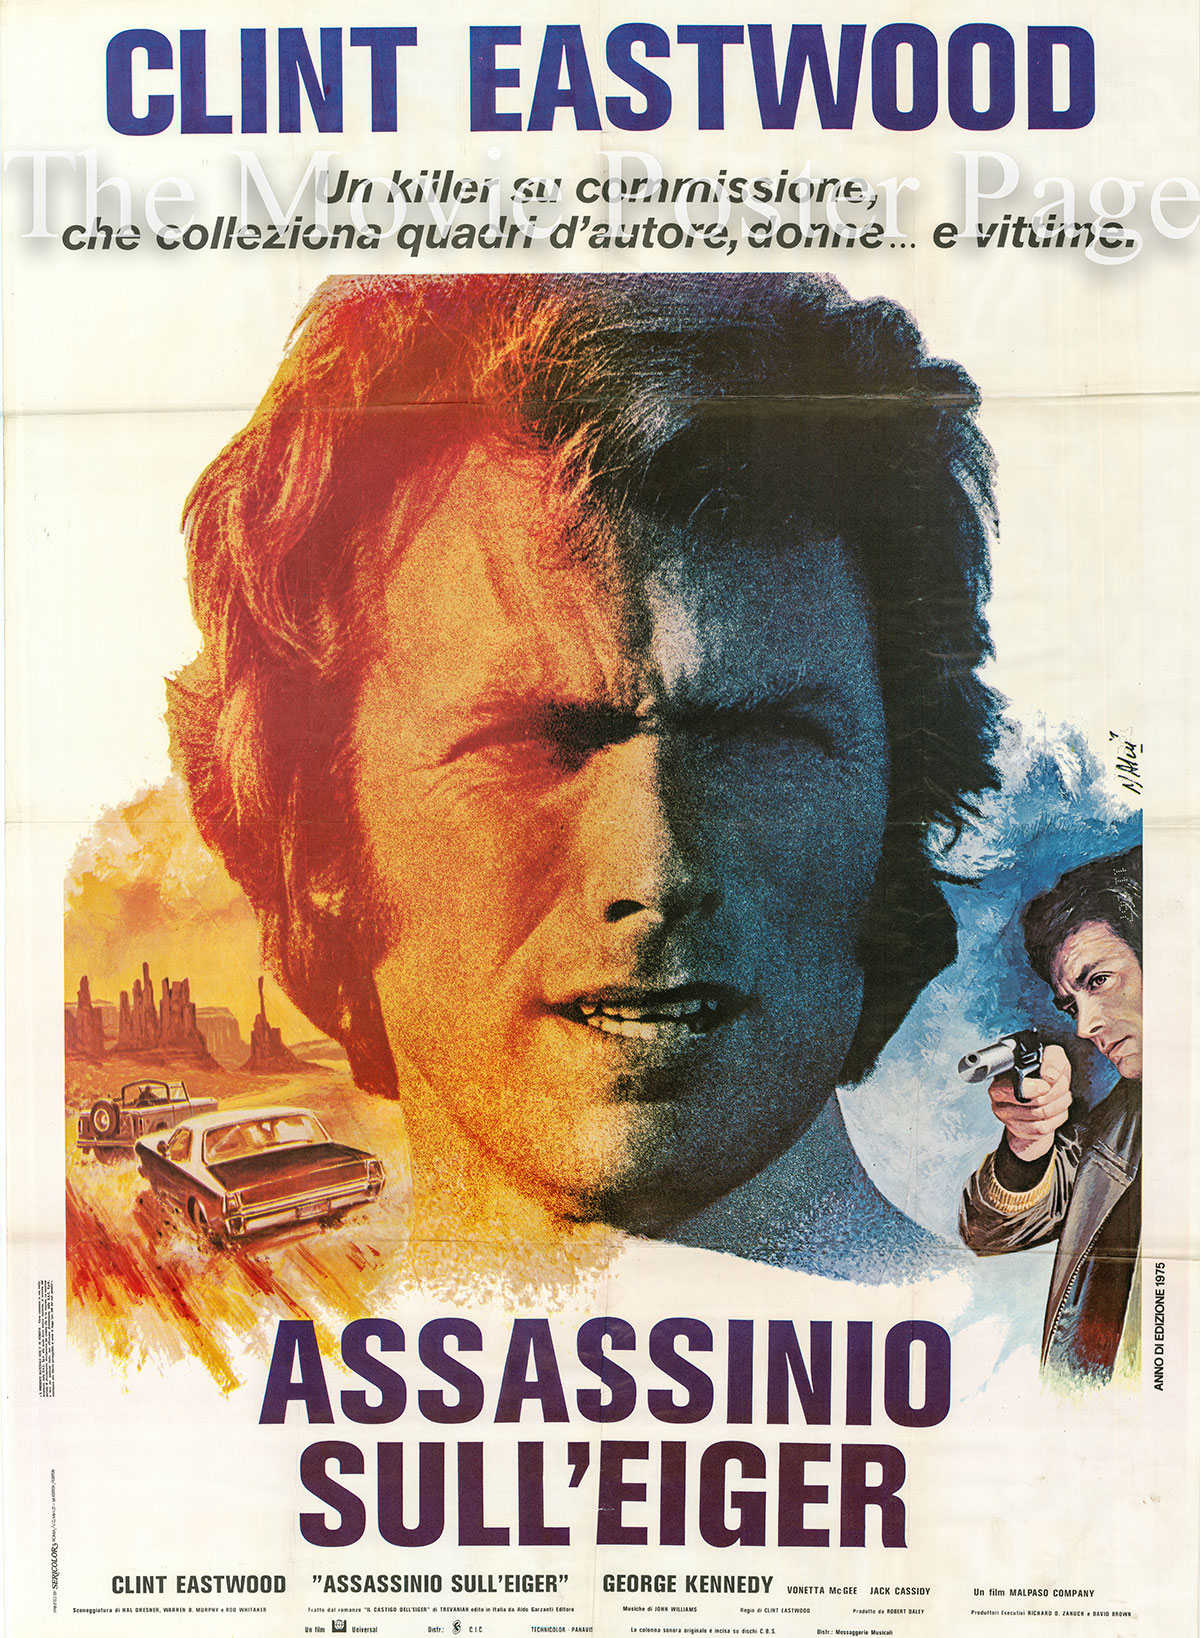 Pictured is an Italian two-sheet promotional poster designed by Jean Mascii for the 1975 Clint Eastwood film The Eiger Sanction starring Clint Eastwood.